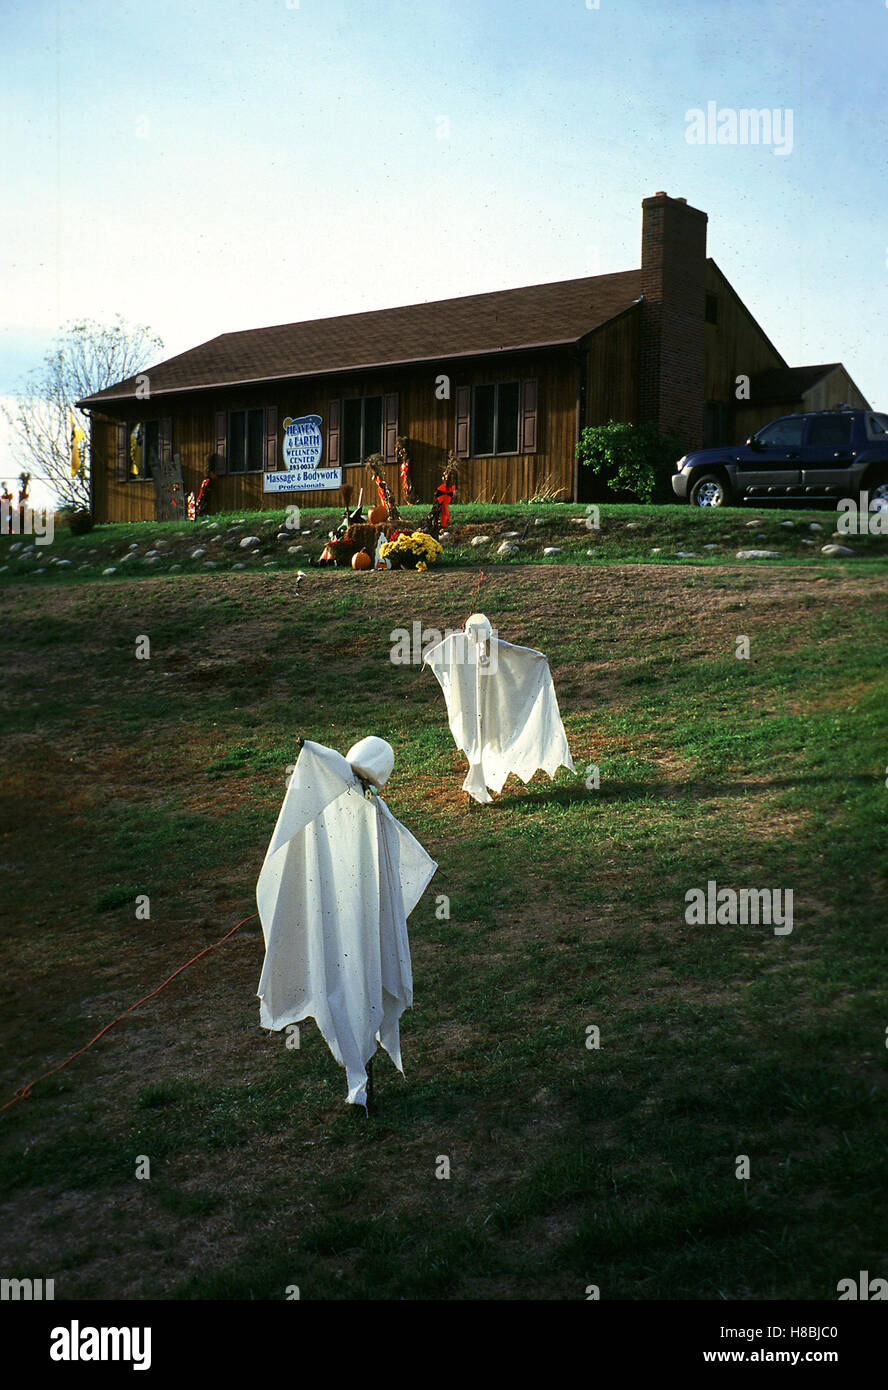 Halloween In Windham Maine Usa 2002 Key Geist Gespenst Stock Photo Alamy